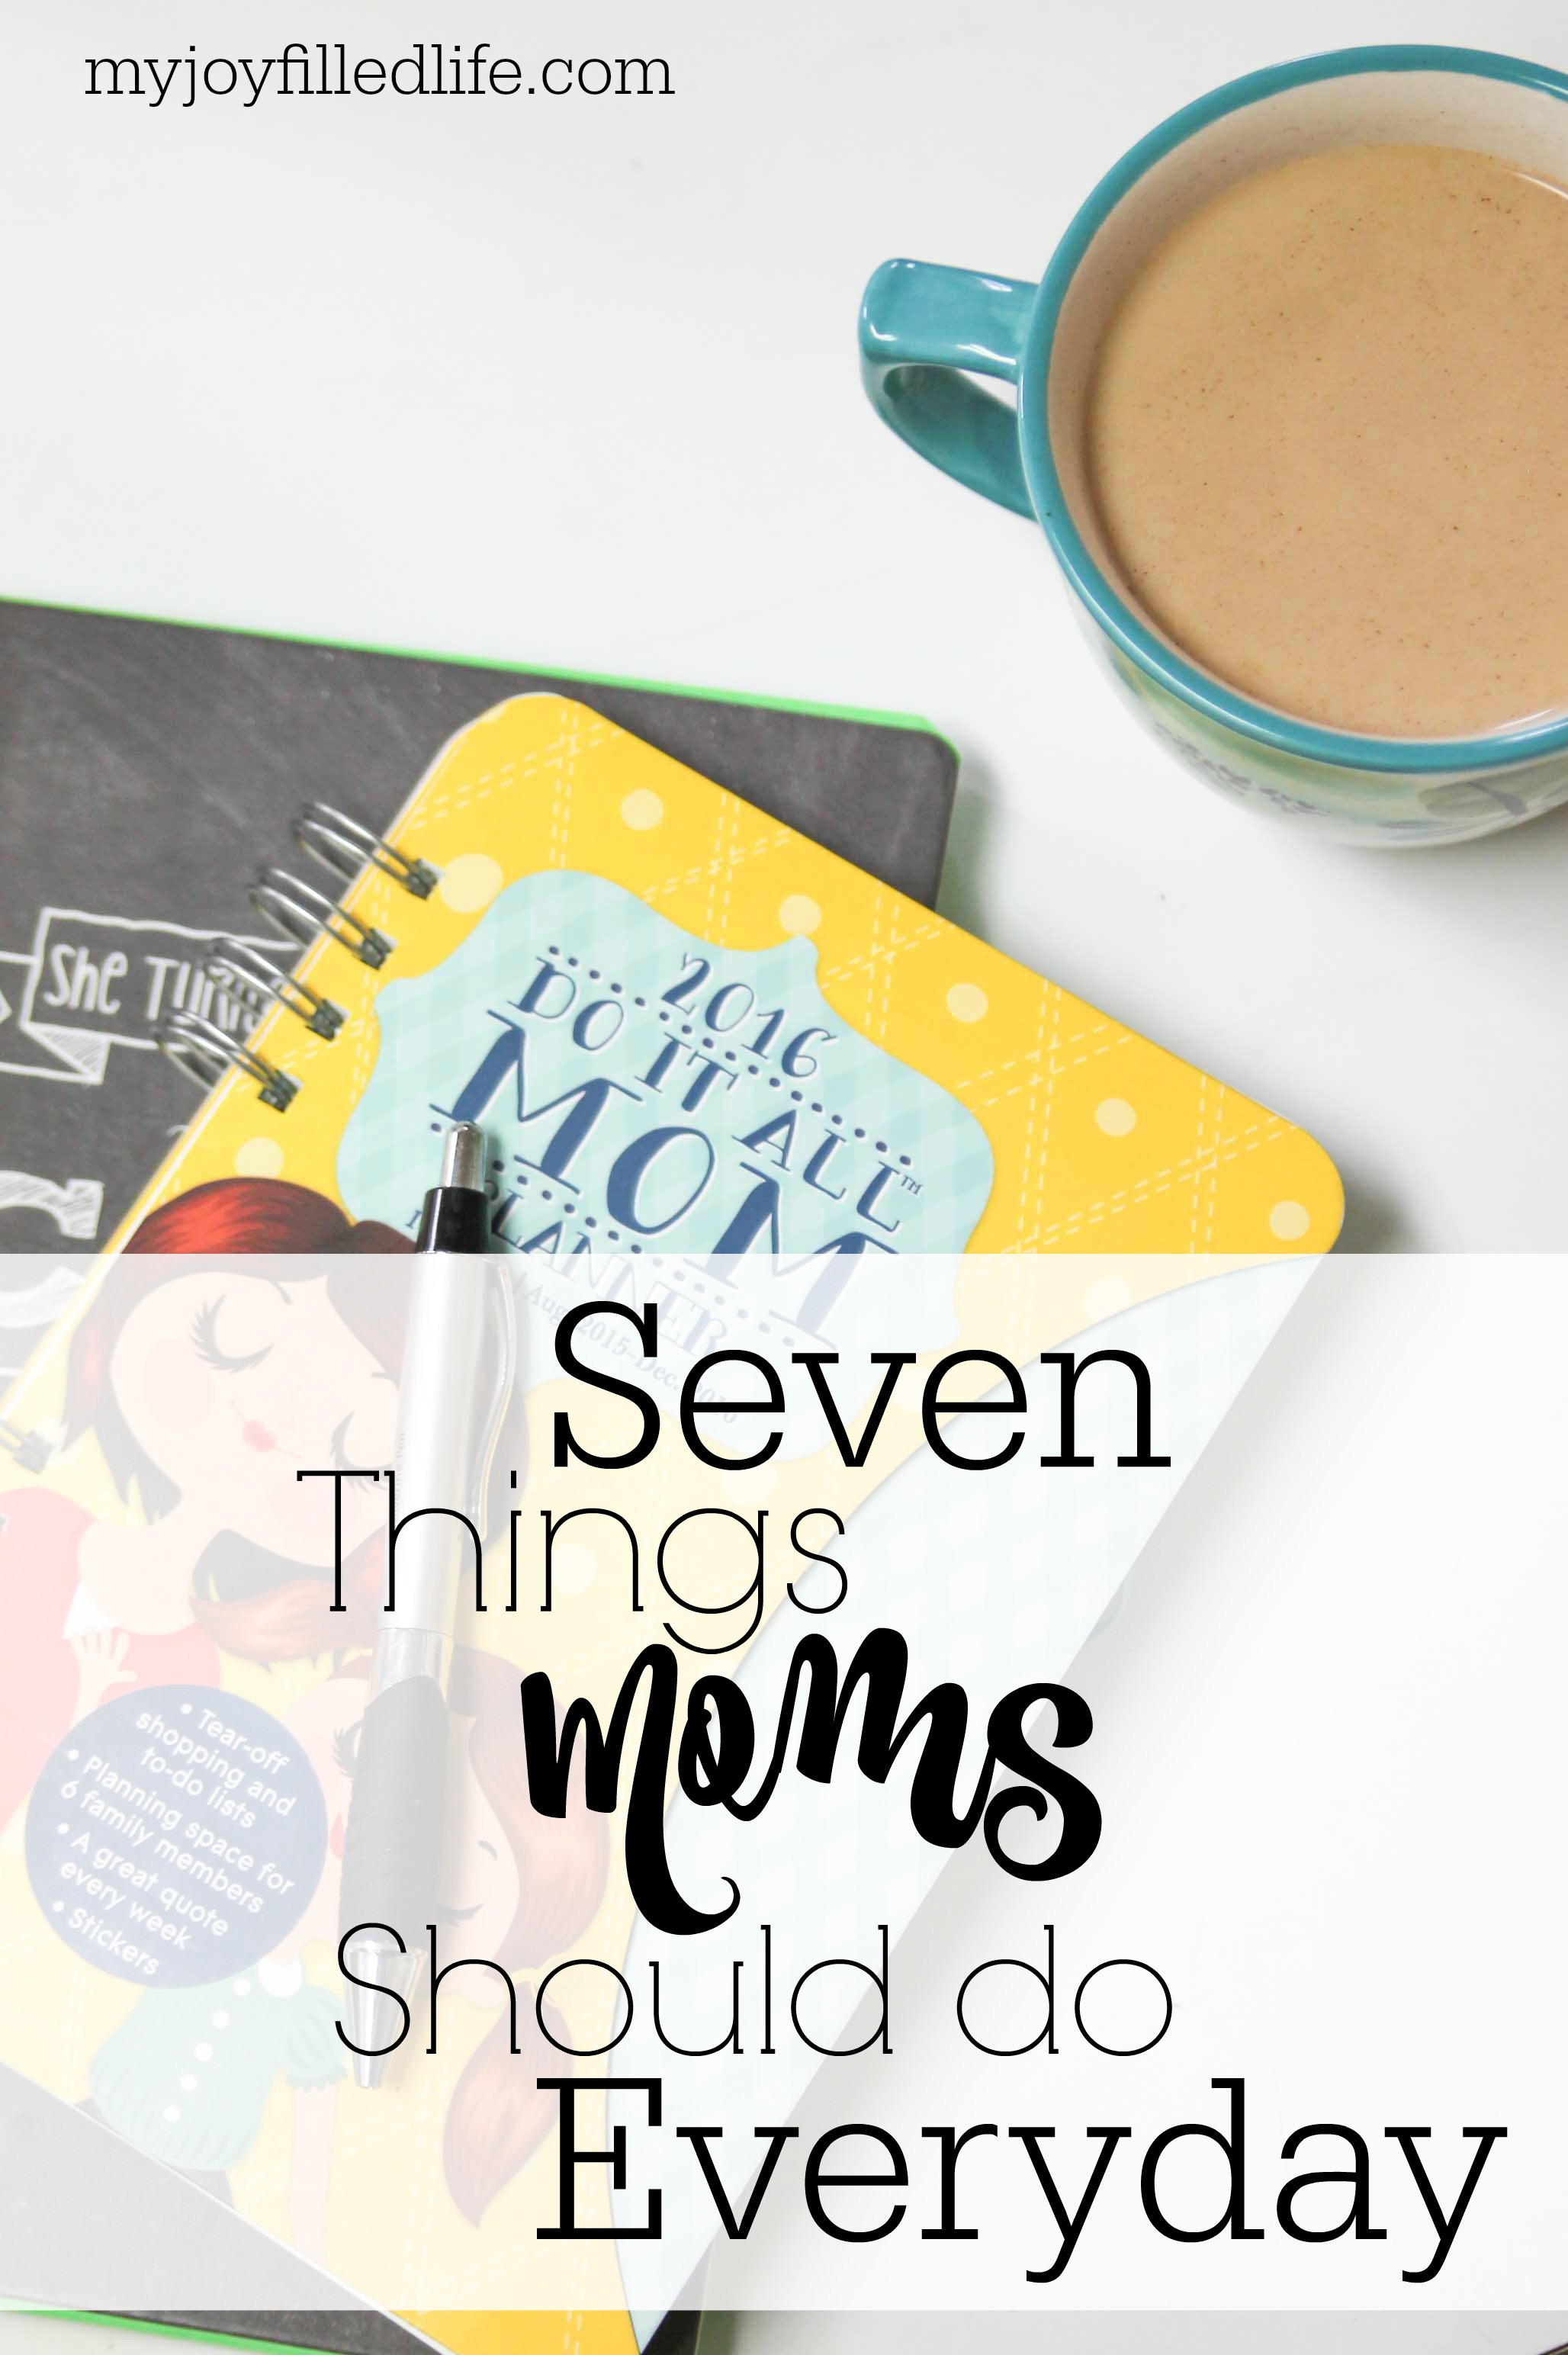 7 Things Moms should do every day